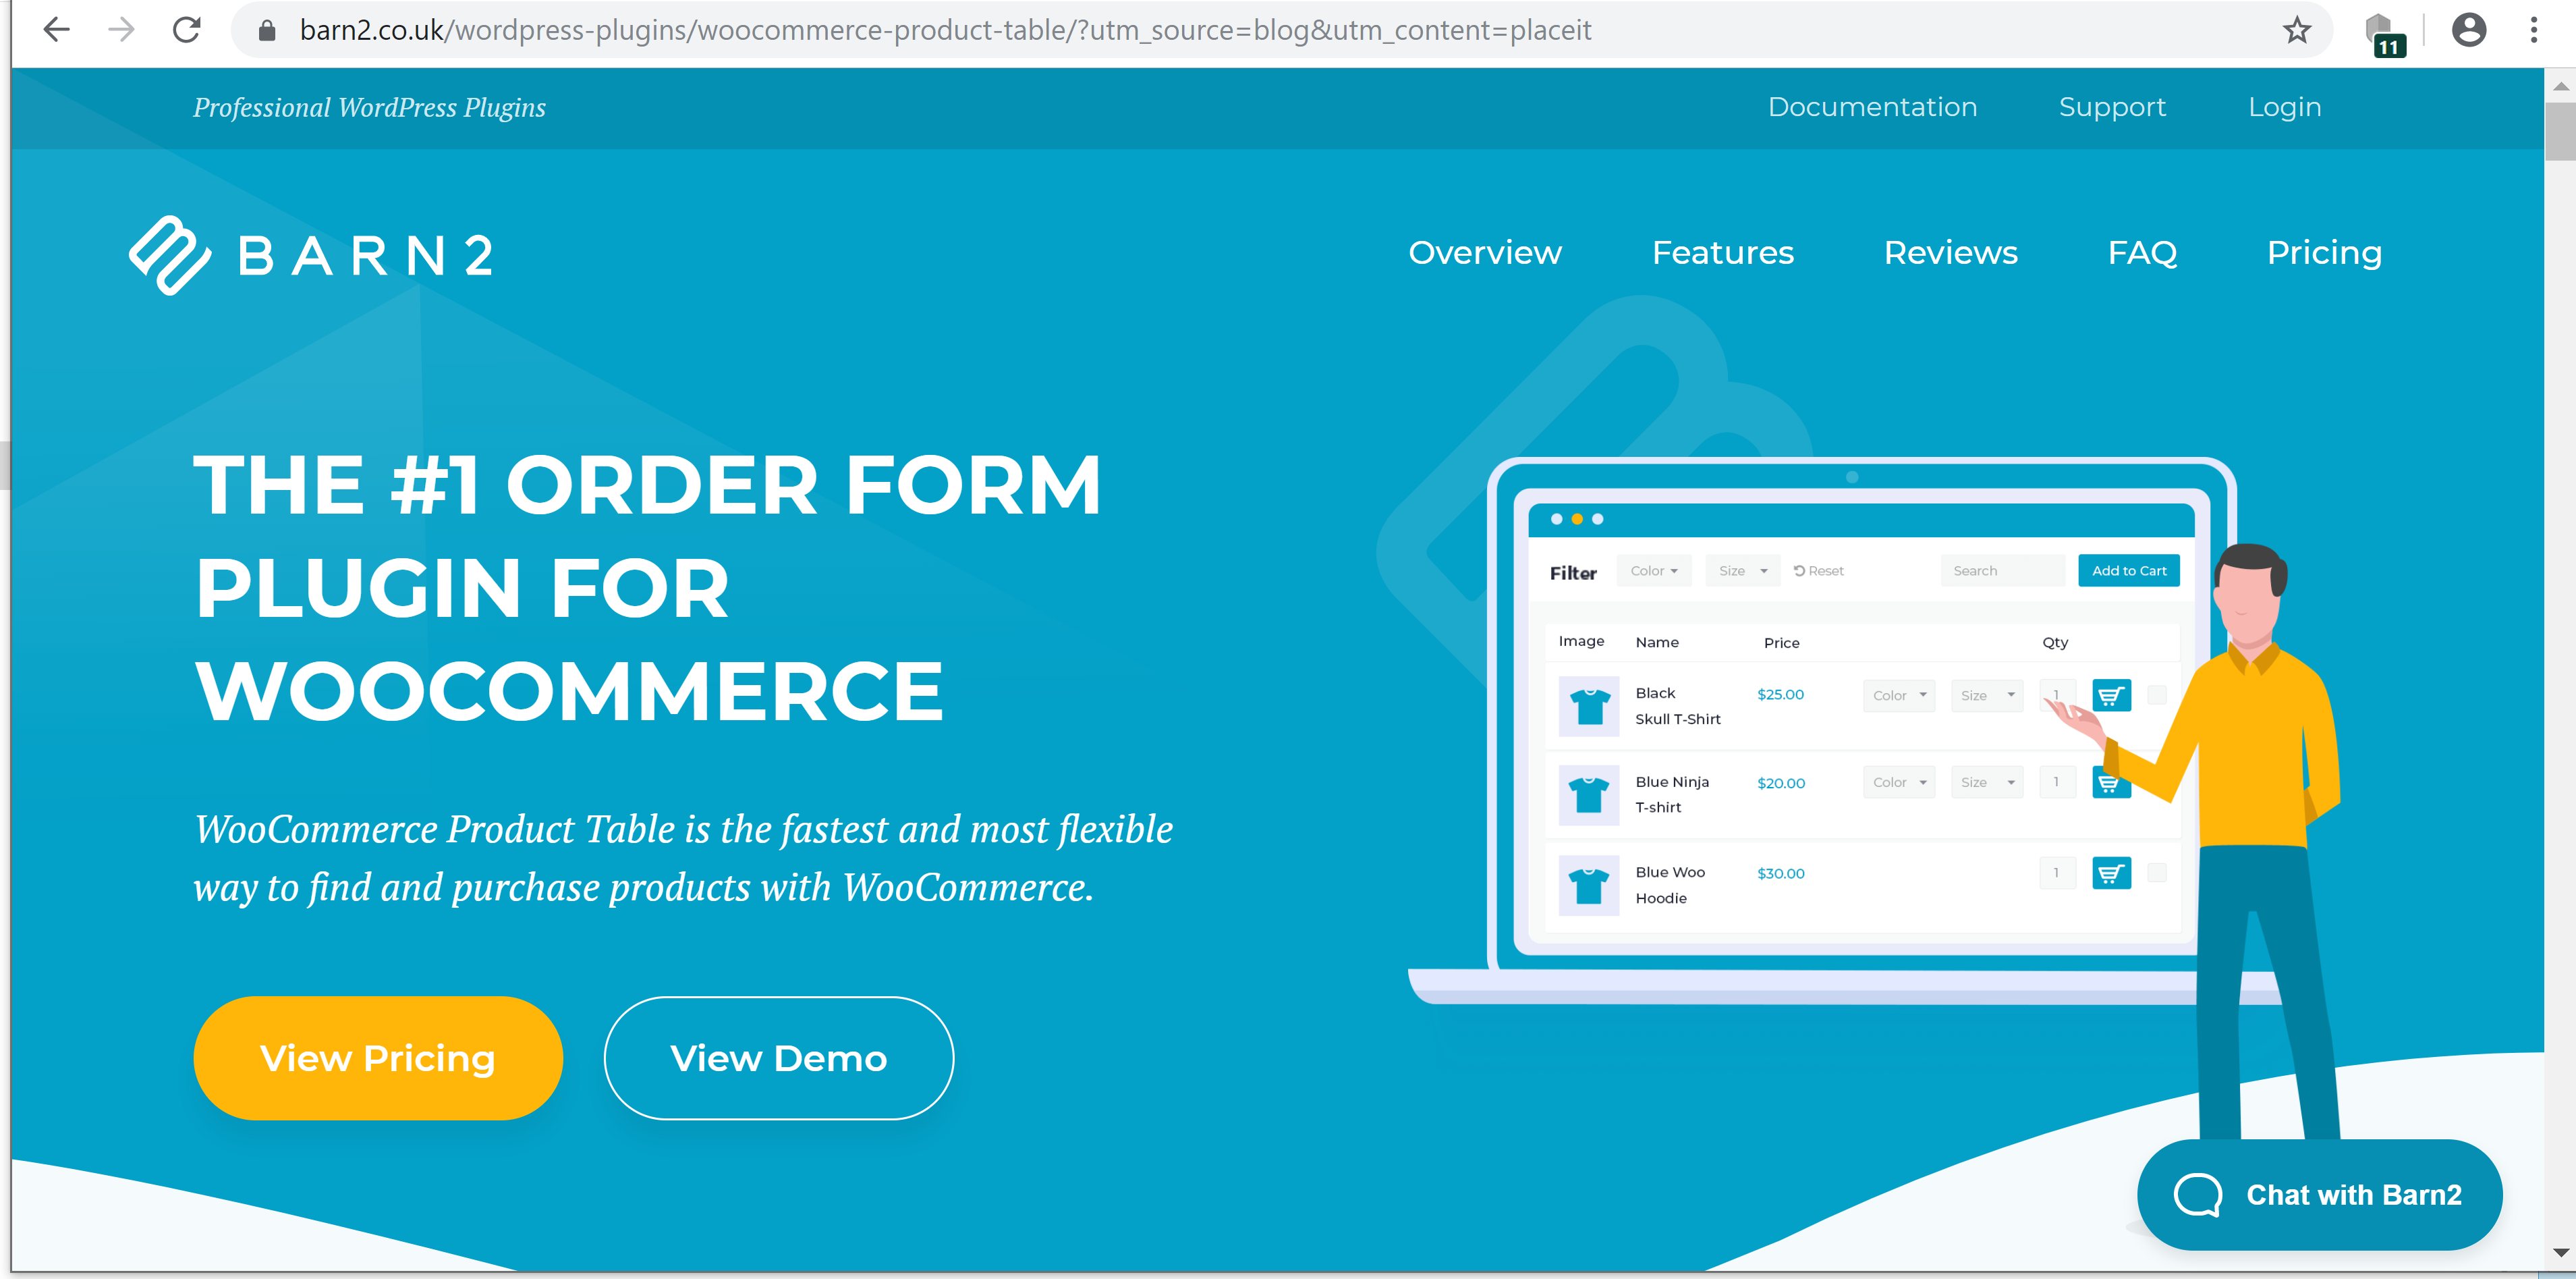 Order form plugin for WooCommerce